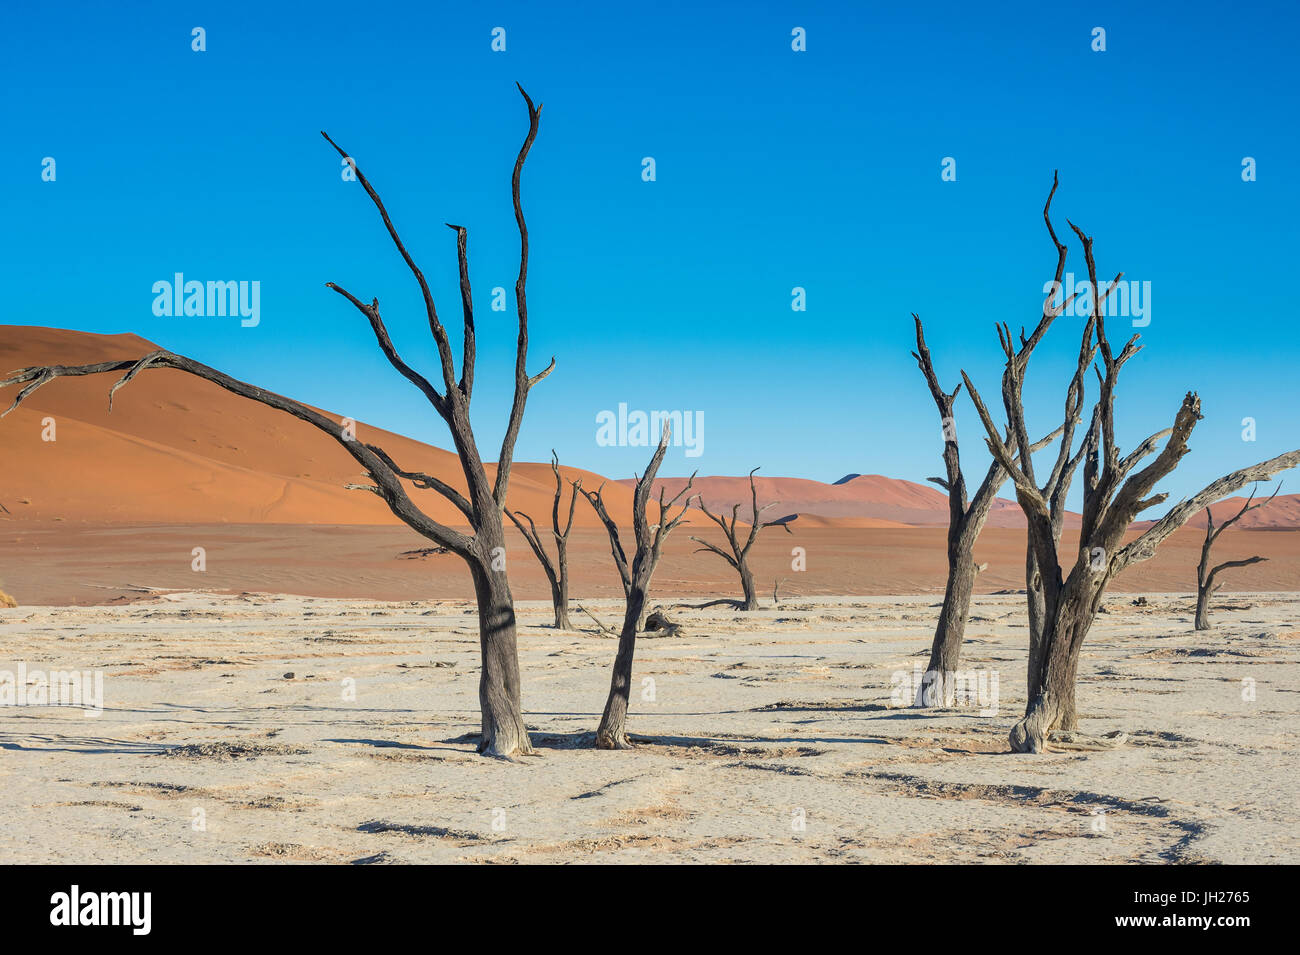 Deadvlei, an old dry lake in the Namib desert, Namibia, Africa - Stock Image